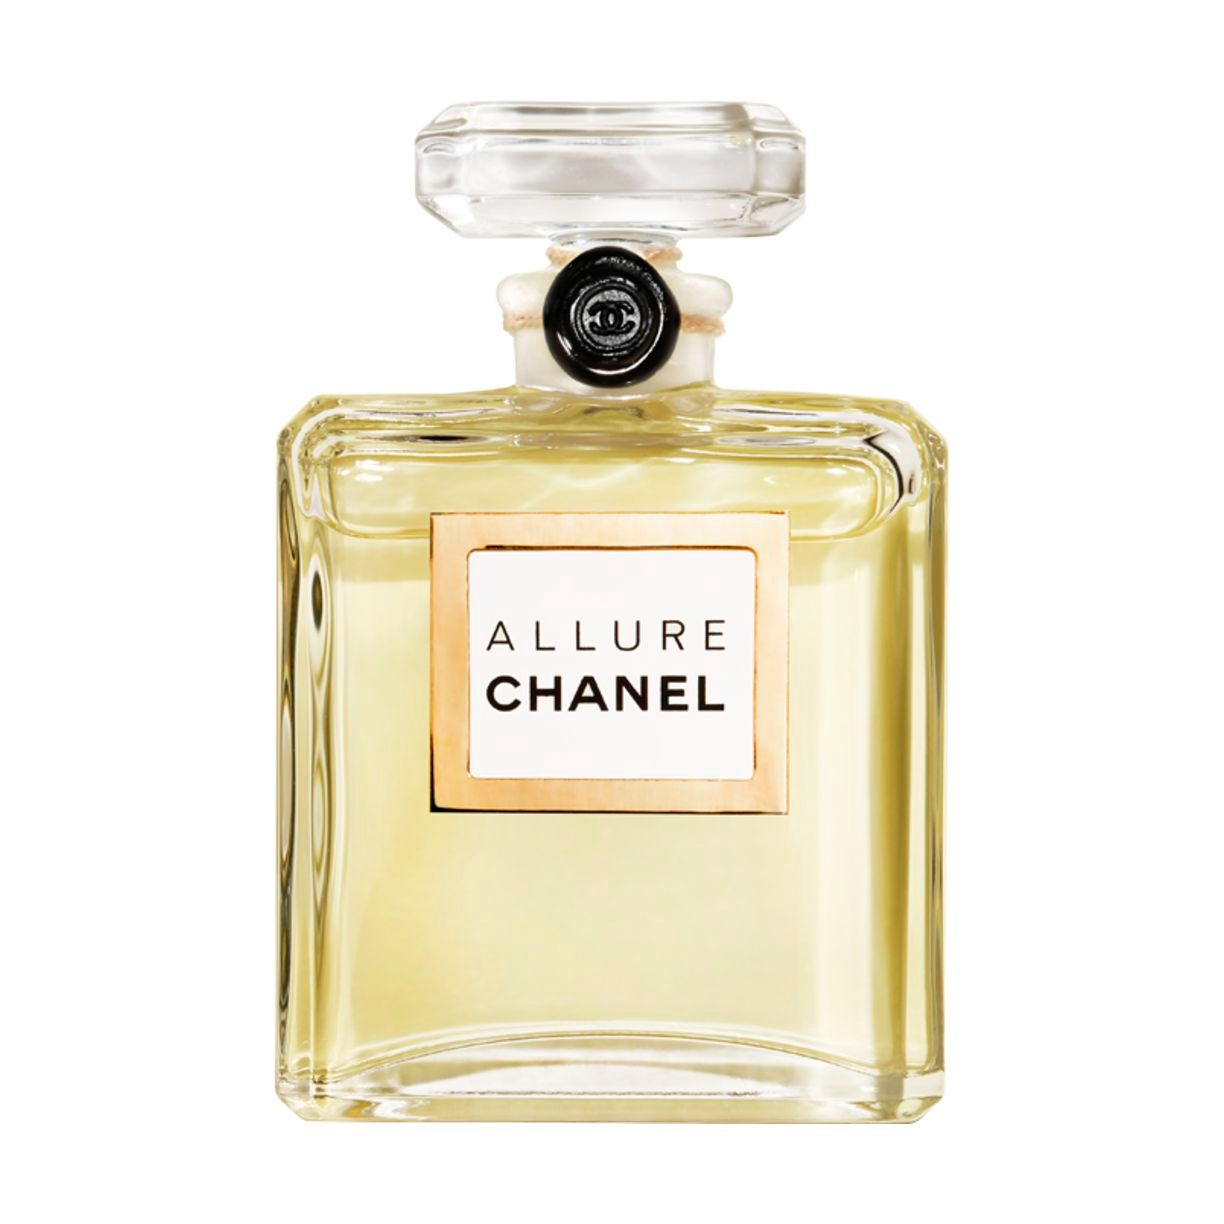 ALLURE PARFUM BOTTLE